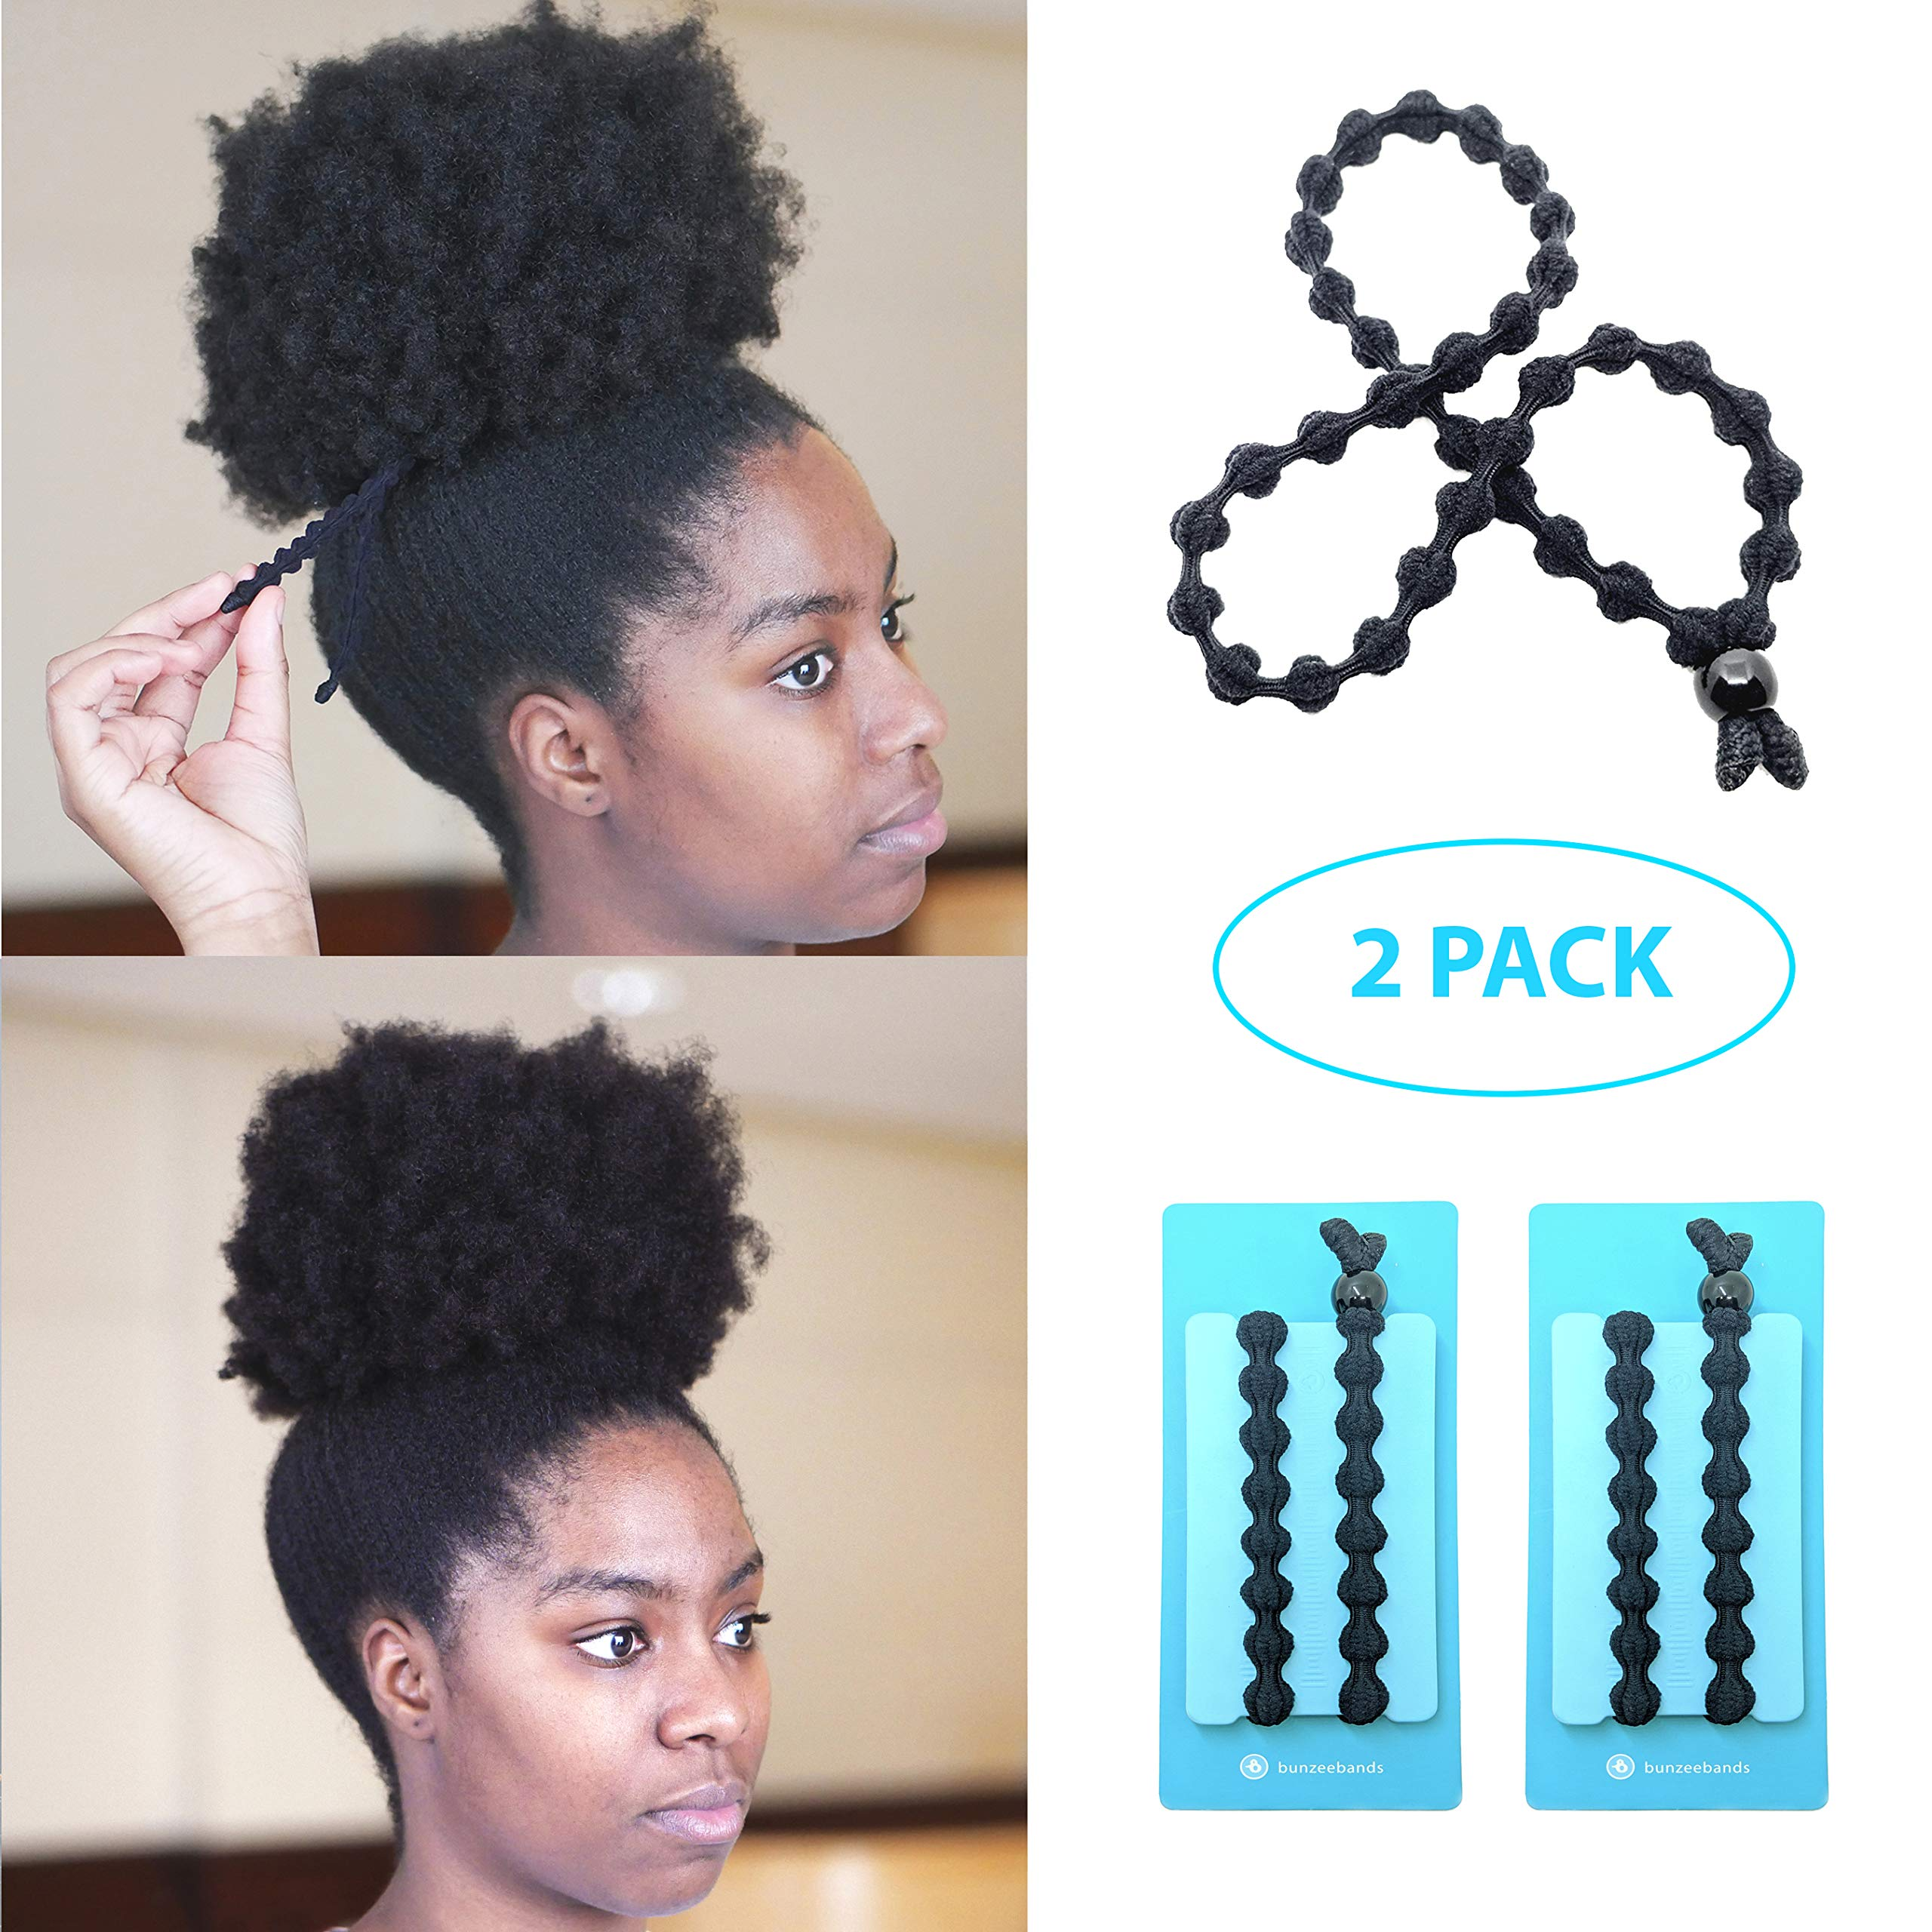 Bunzee Bands - NEW Ultimate Headband Hair Tie for Thick Heavy Natural Kinky & Curly Hair. Adjustable Sizing for the Perfect Ponytail, Hair Bun, High Puff and Updos - PATENT PENDING (2 Pack, Black) by Bunzee Bands